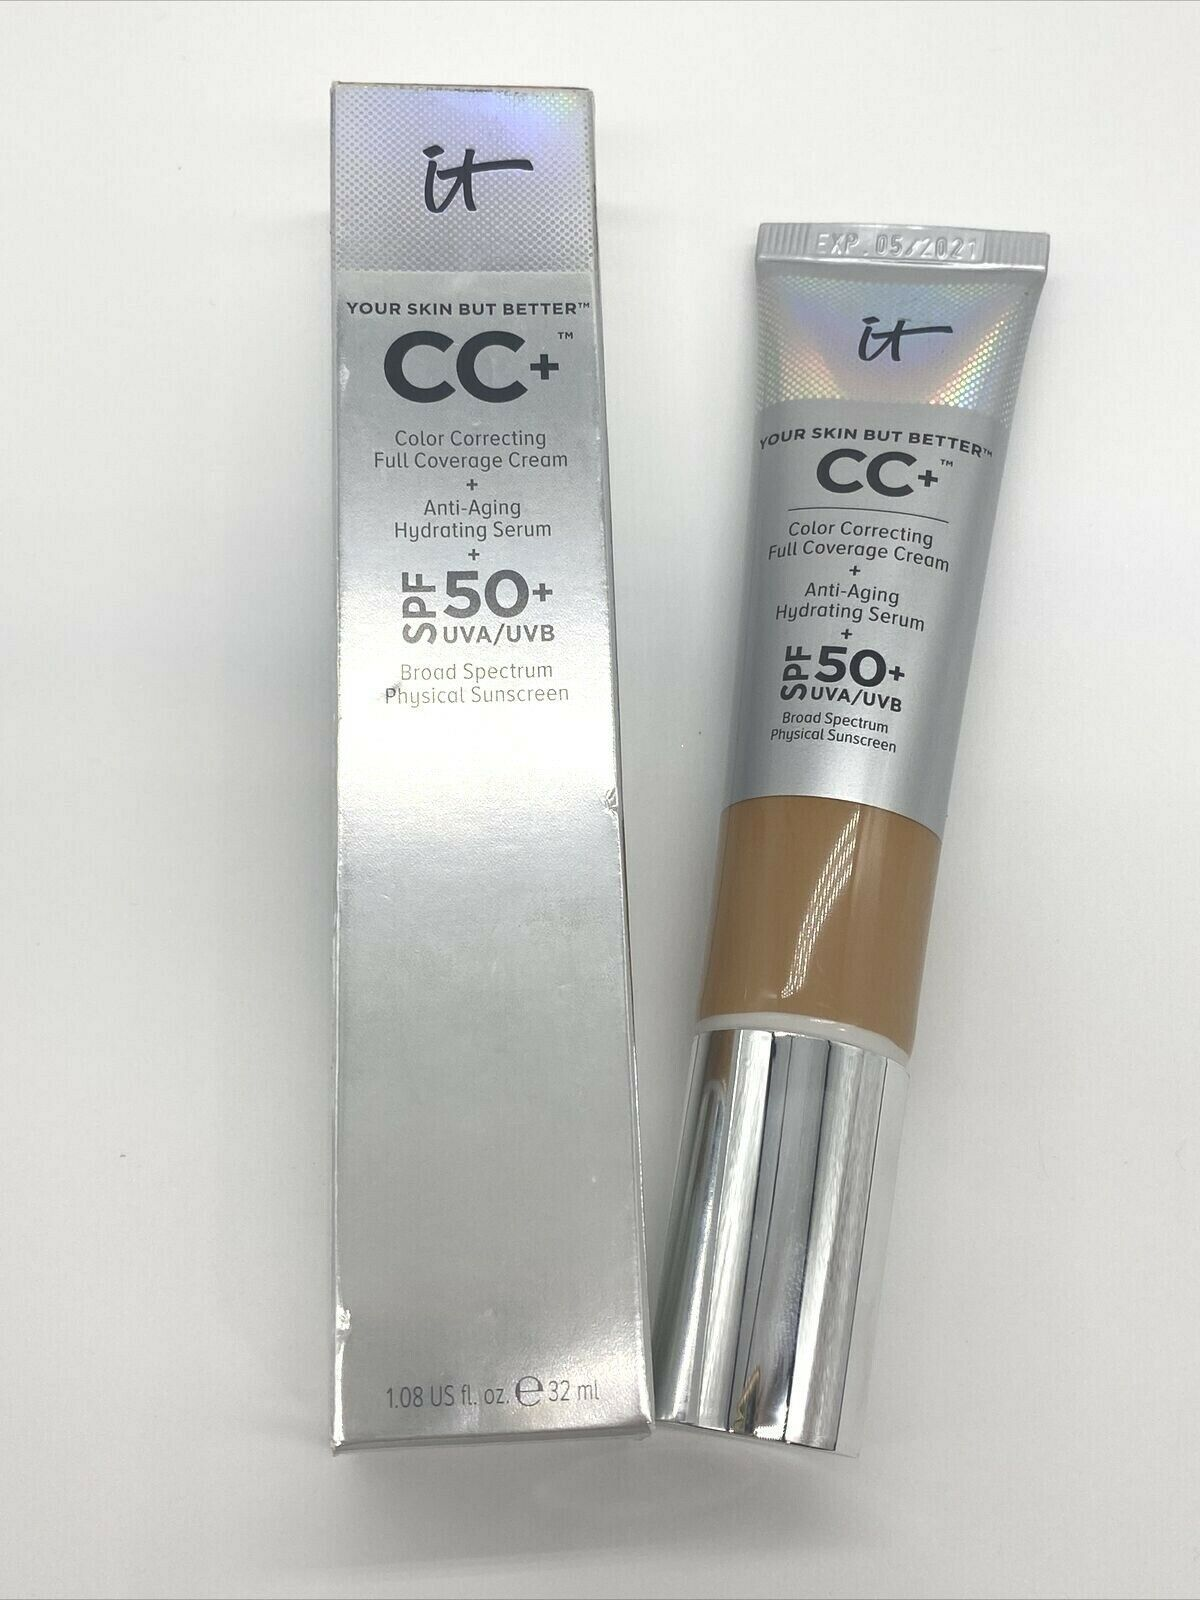 IT Cosmetics Your Skin But Better CC+ Cream *RICH* NEW Expiration O5/2O21 - $12.38